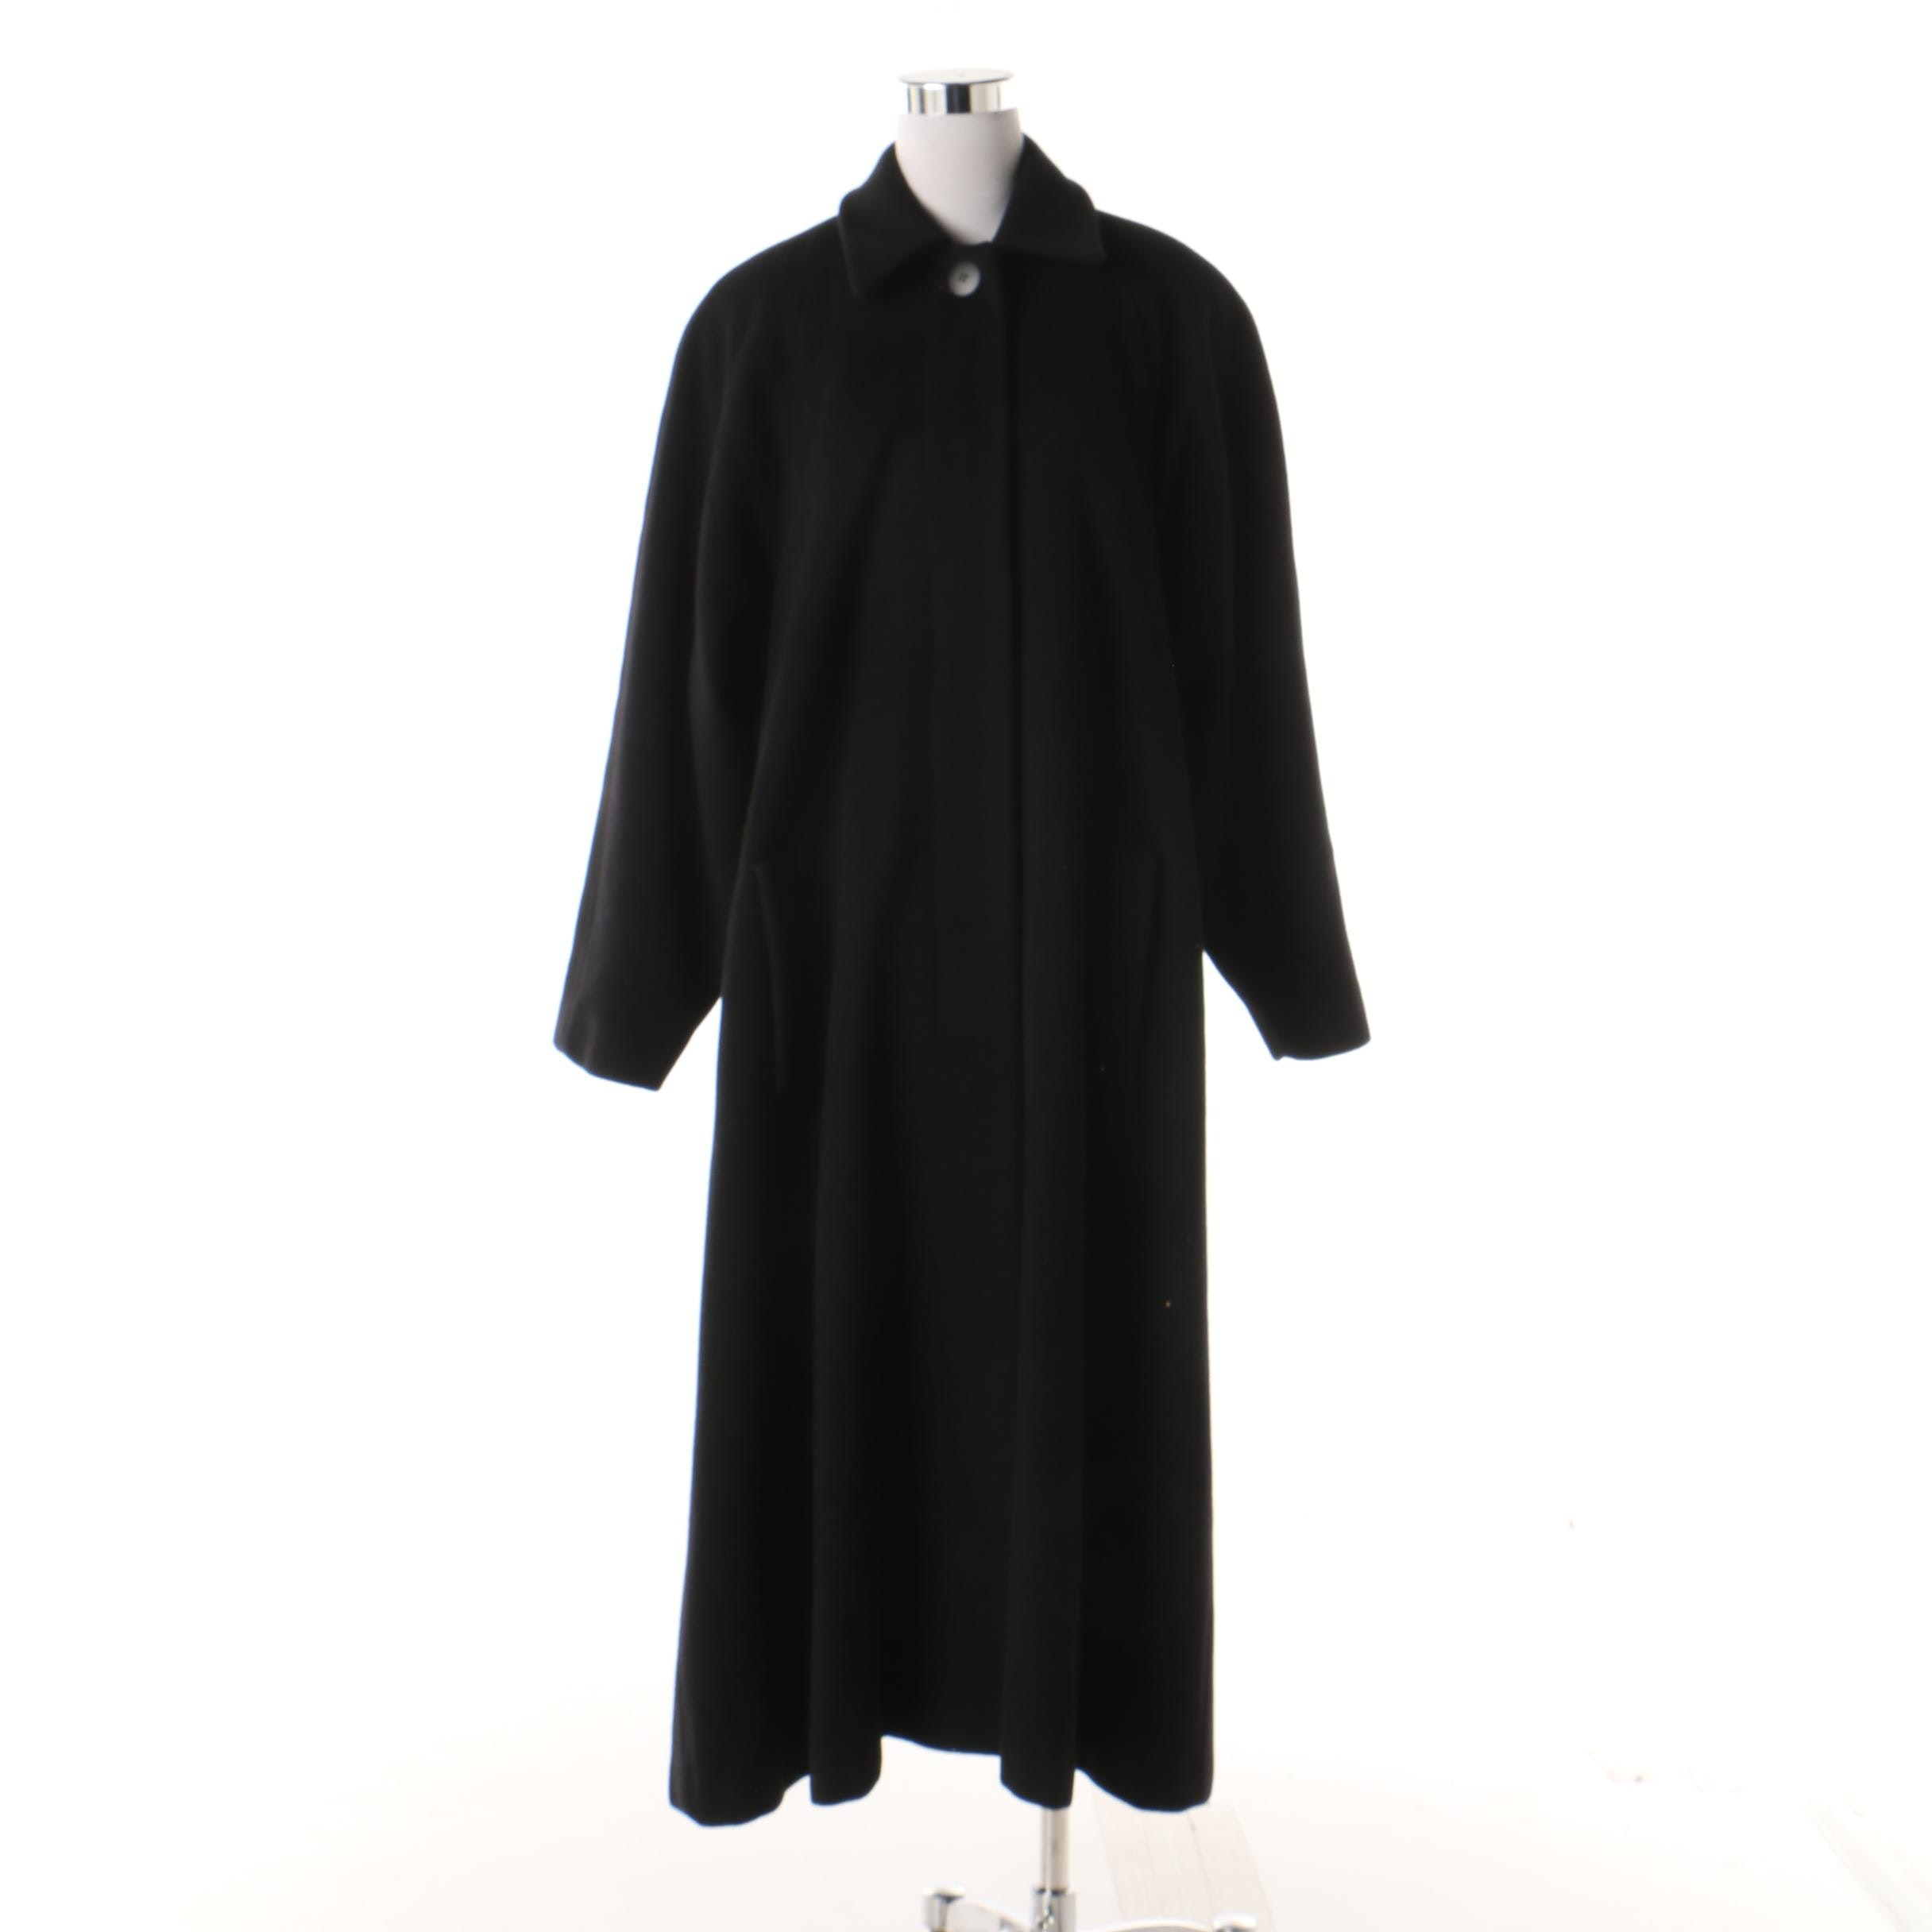 Women's Vintage Christian Dior Black Wool Swing Coat